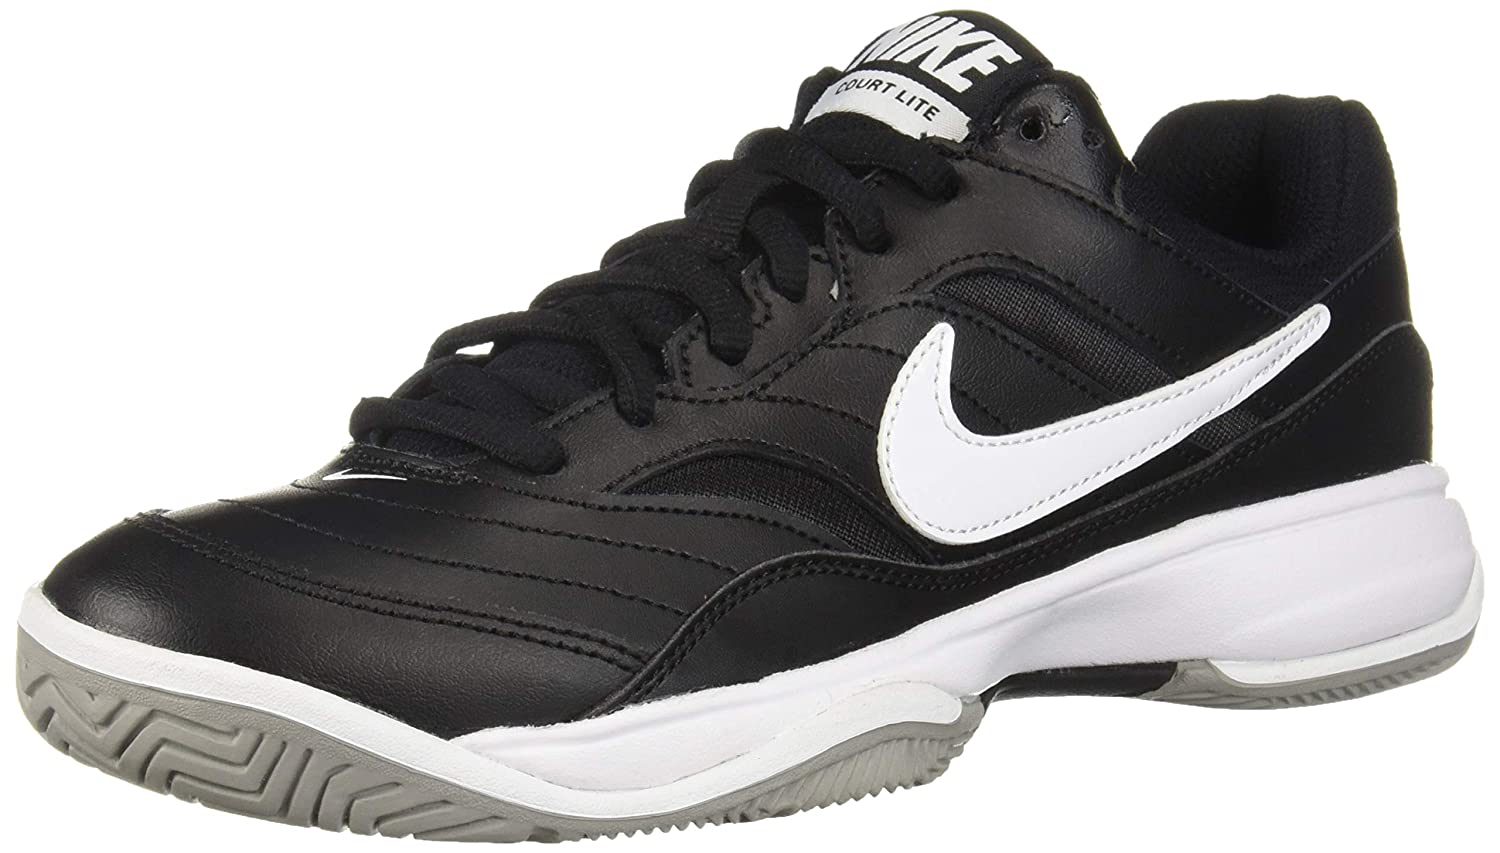 new product 2ea5b 58d57 Amazon.com   NIKE Men s Court Lite Tennis Shoes   Tennis   Racquet Sports